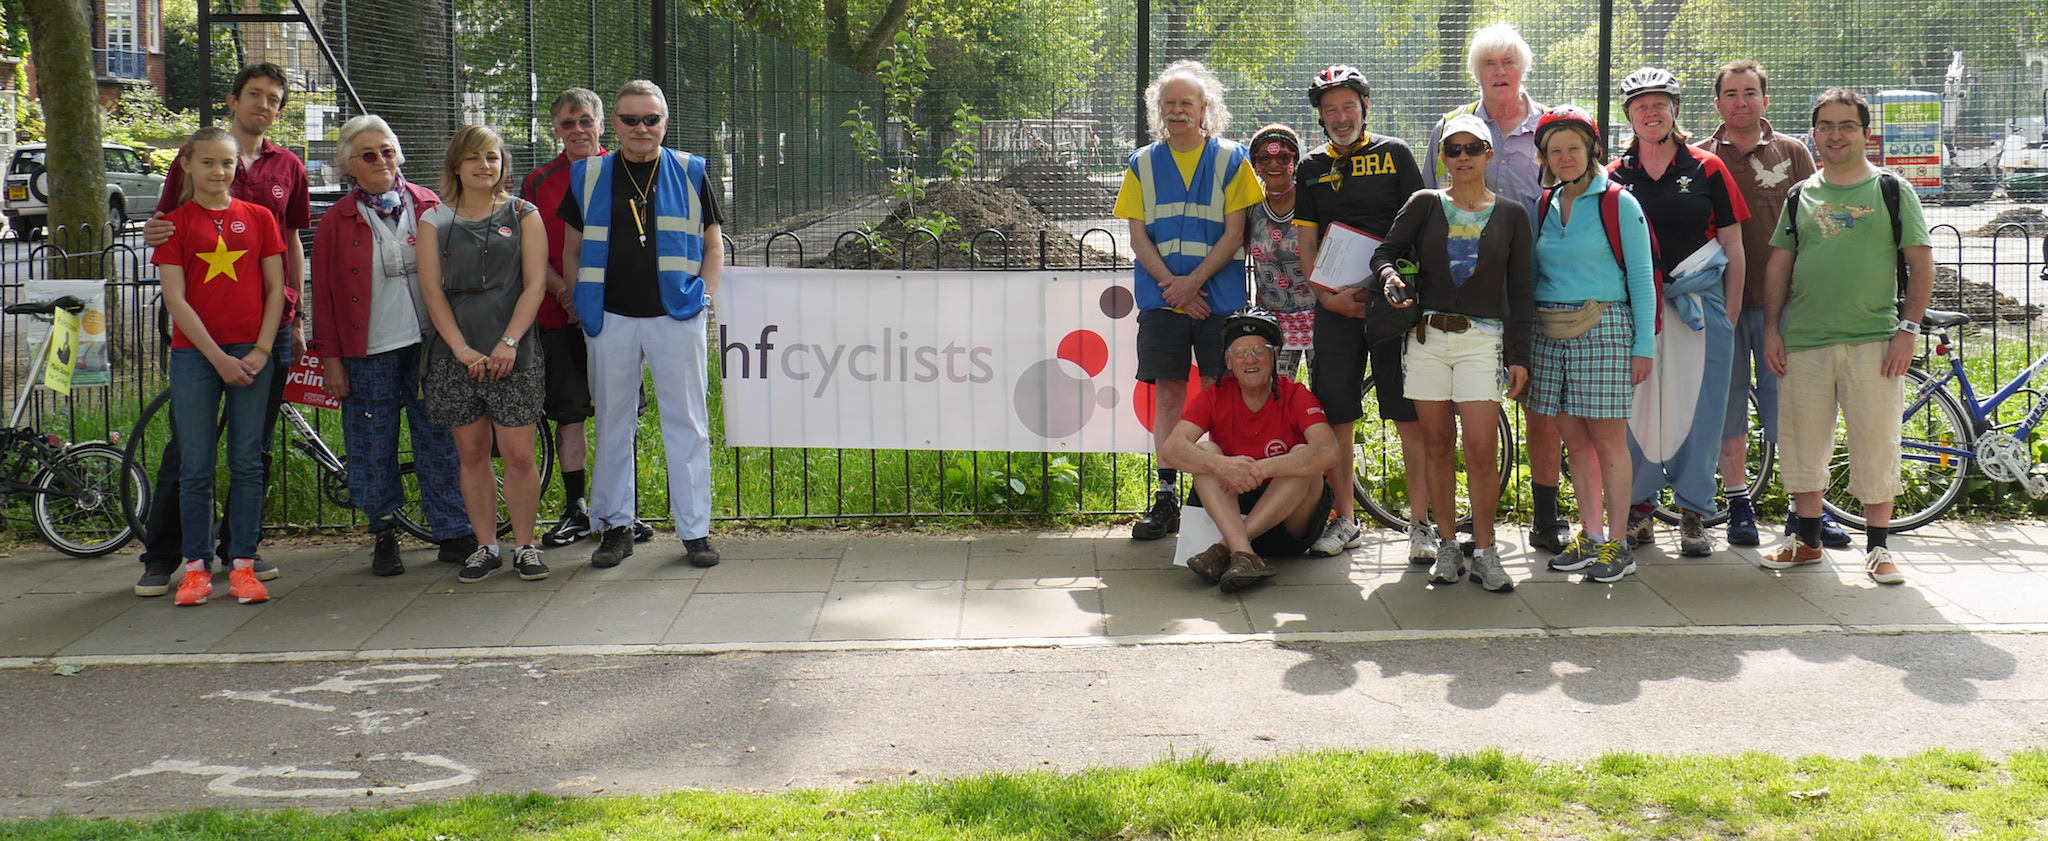 hfcyclists before setting off to The Big Ride 2014